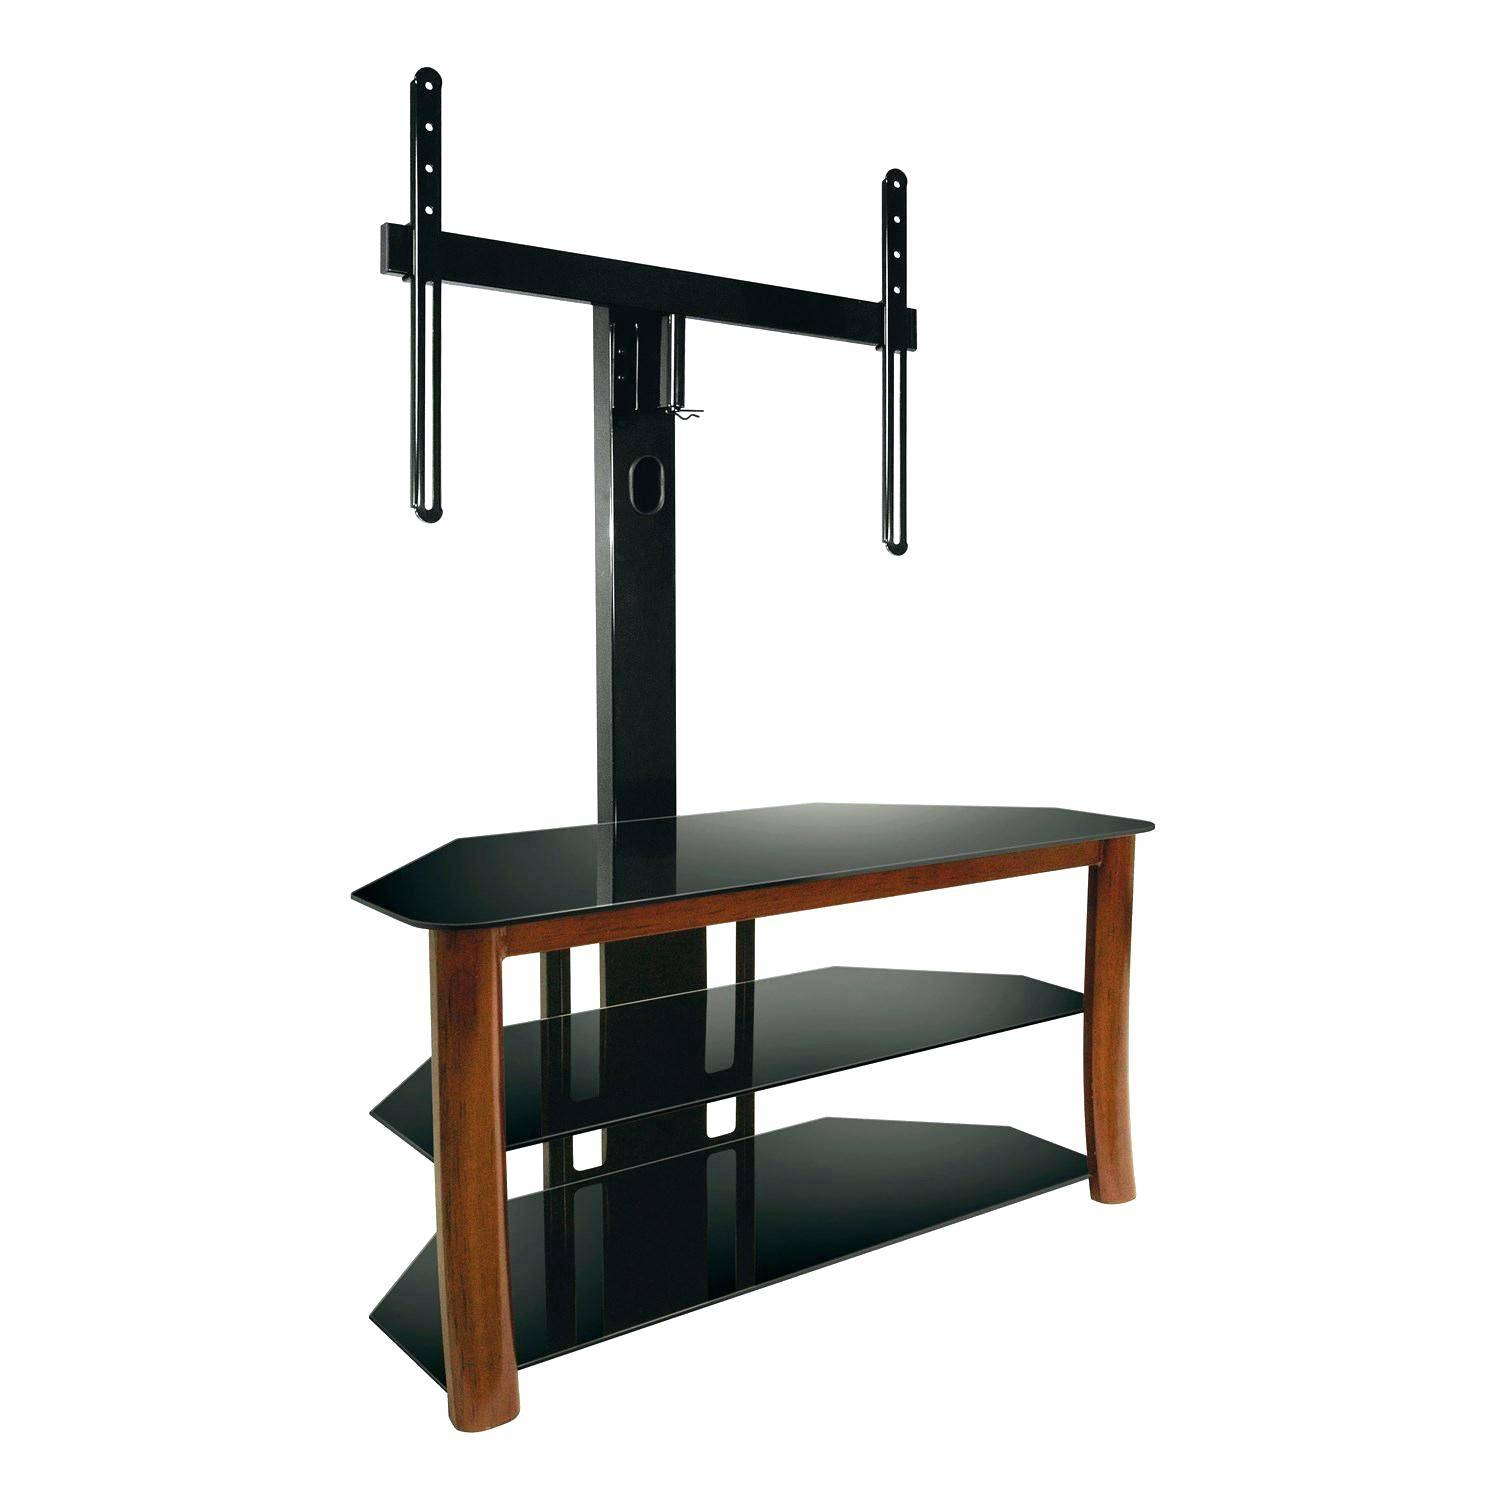 Tv Stand : Gecko Tv Stand For Up To 42 Inch Tvs Tv Stand For Inside Universal 24 Inch Tv Stands (View 13 of 15)